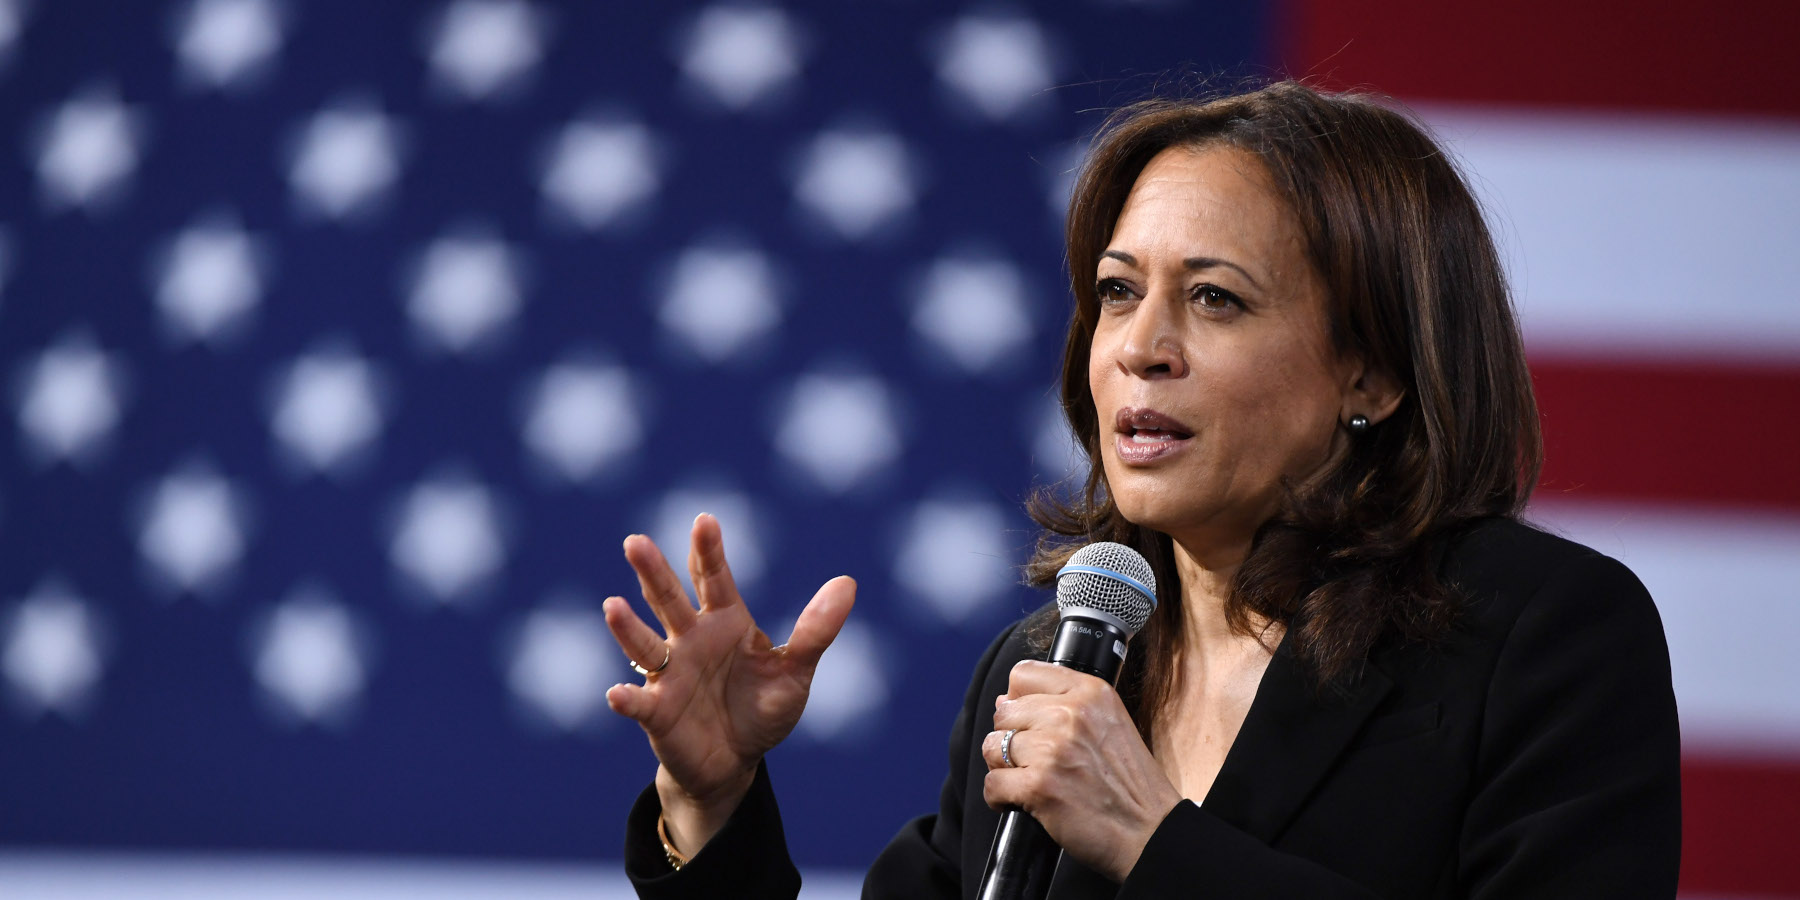 Key Moments In Kamala Harris History With Silicon Valley Venturebeat